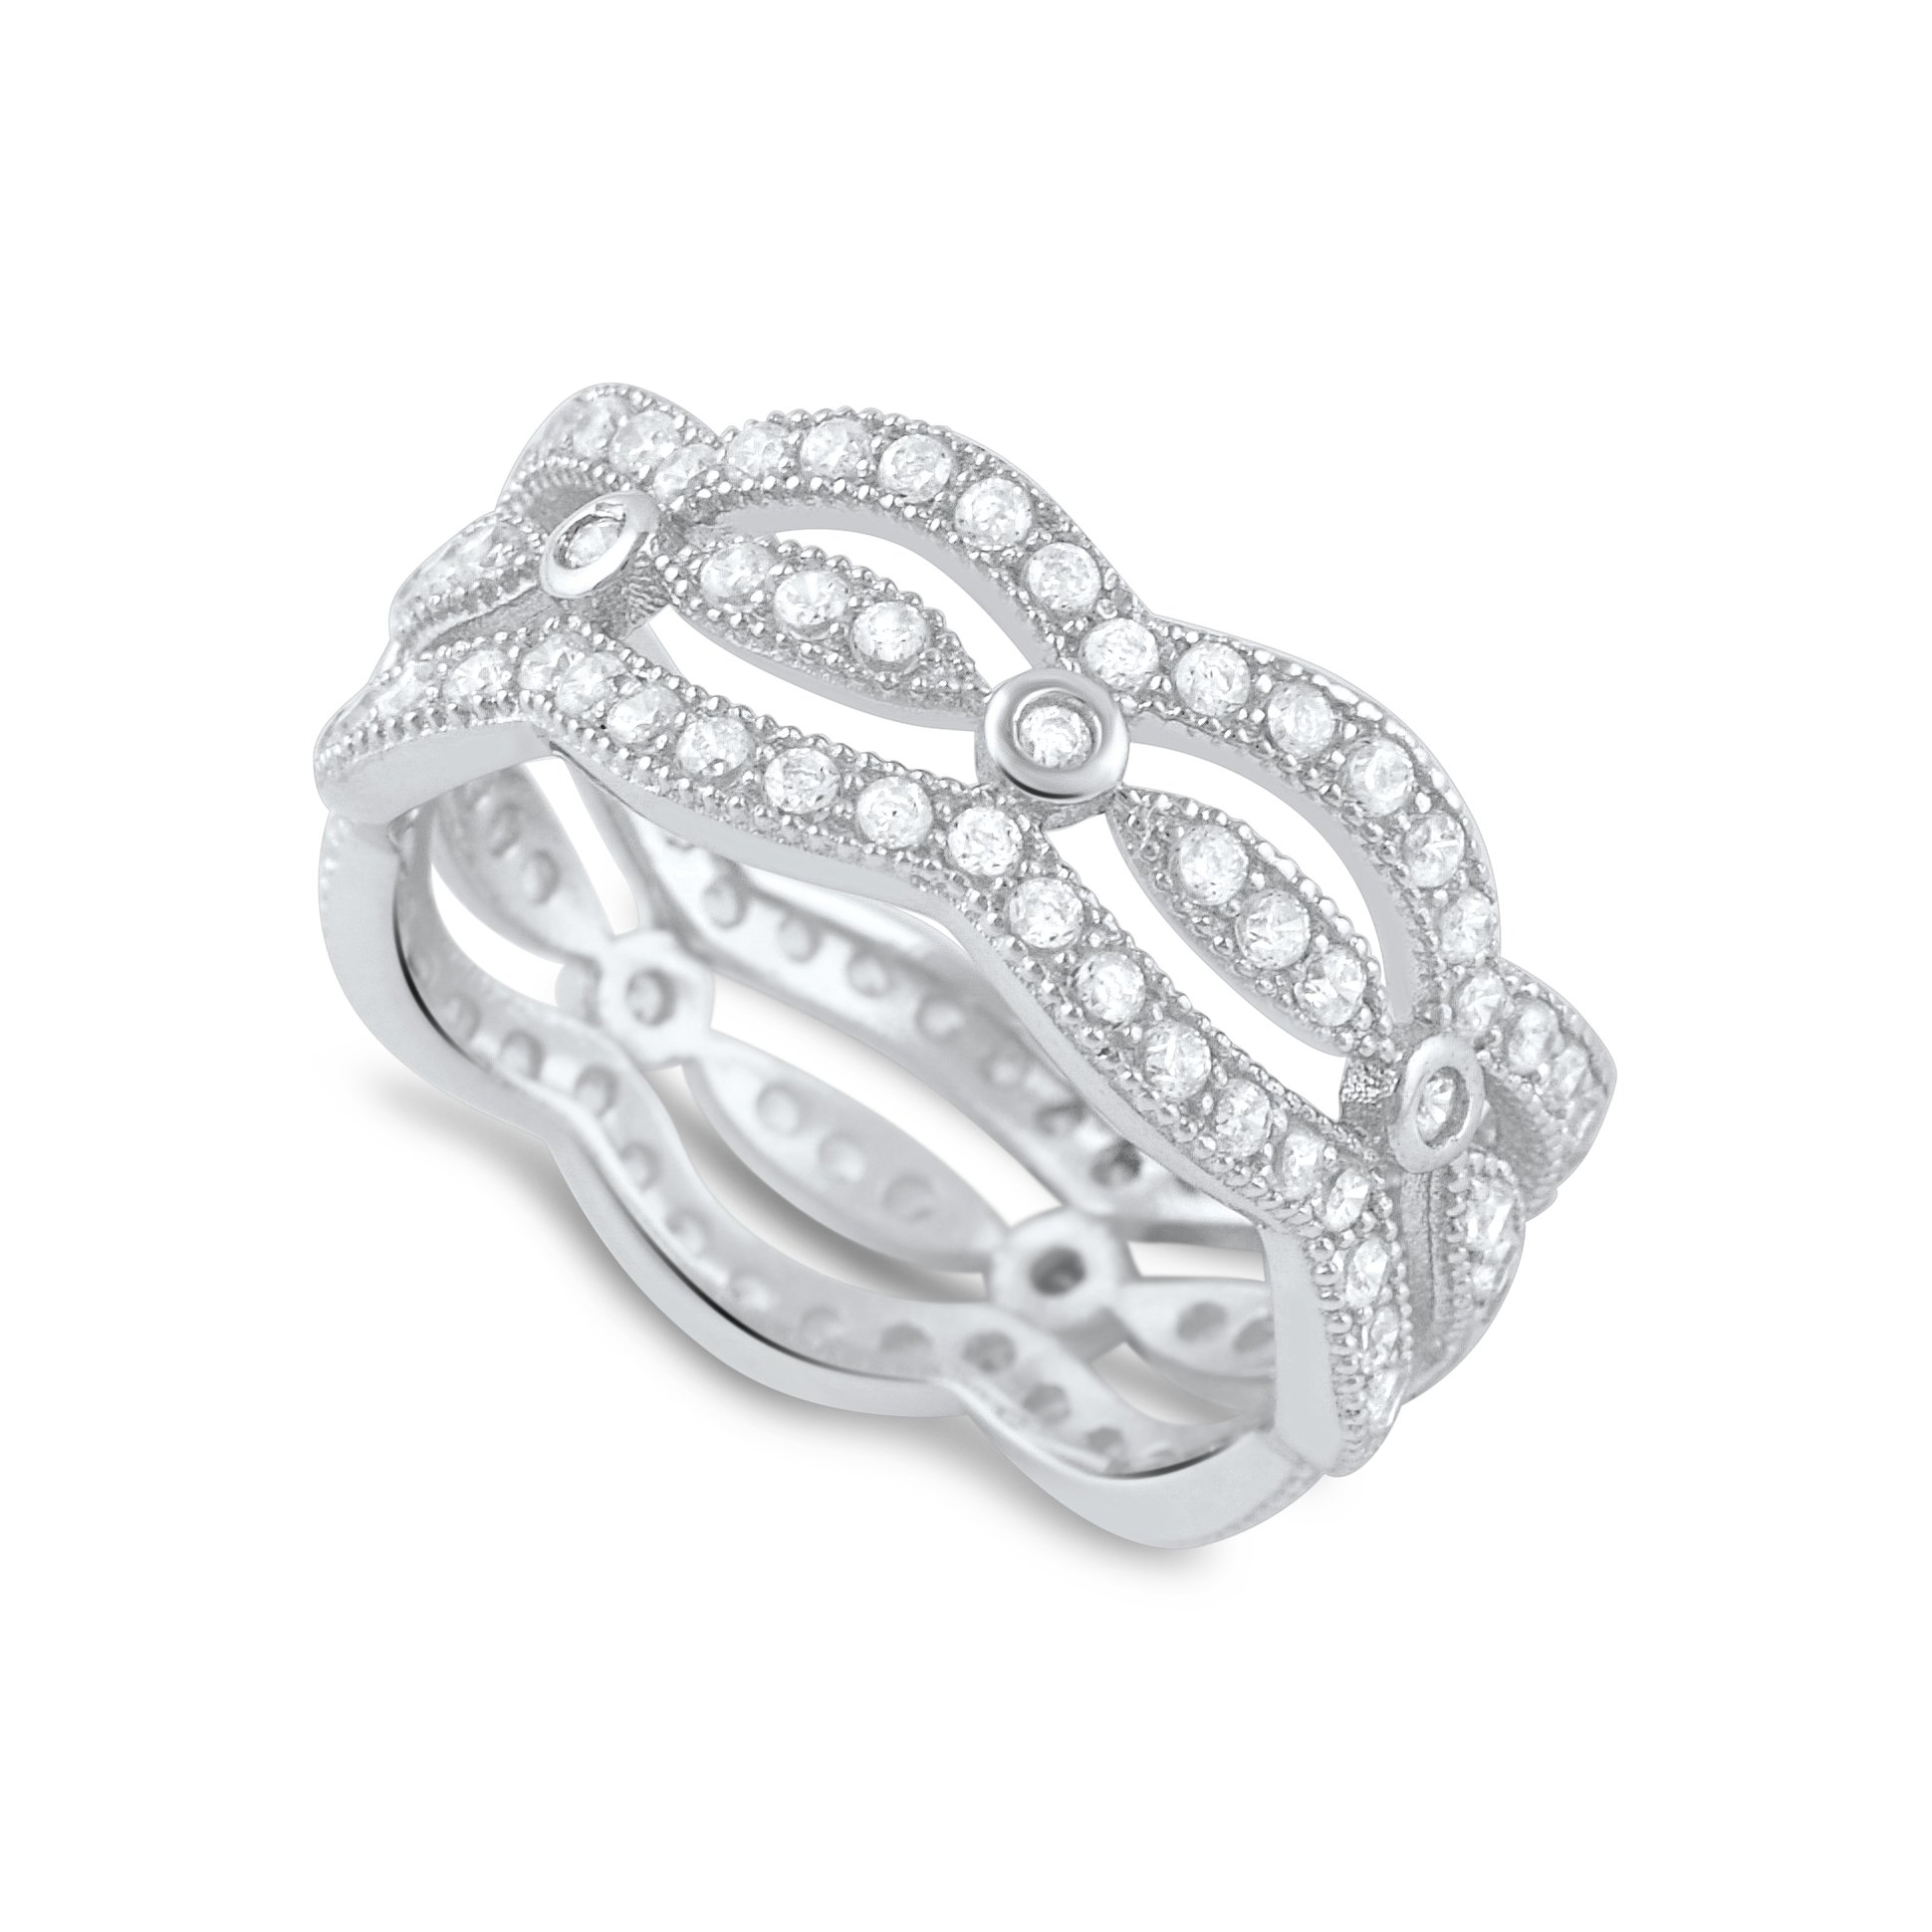 Sterling Silver Cz Stacked Eternity Ring - Size 8